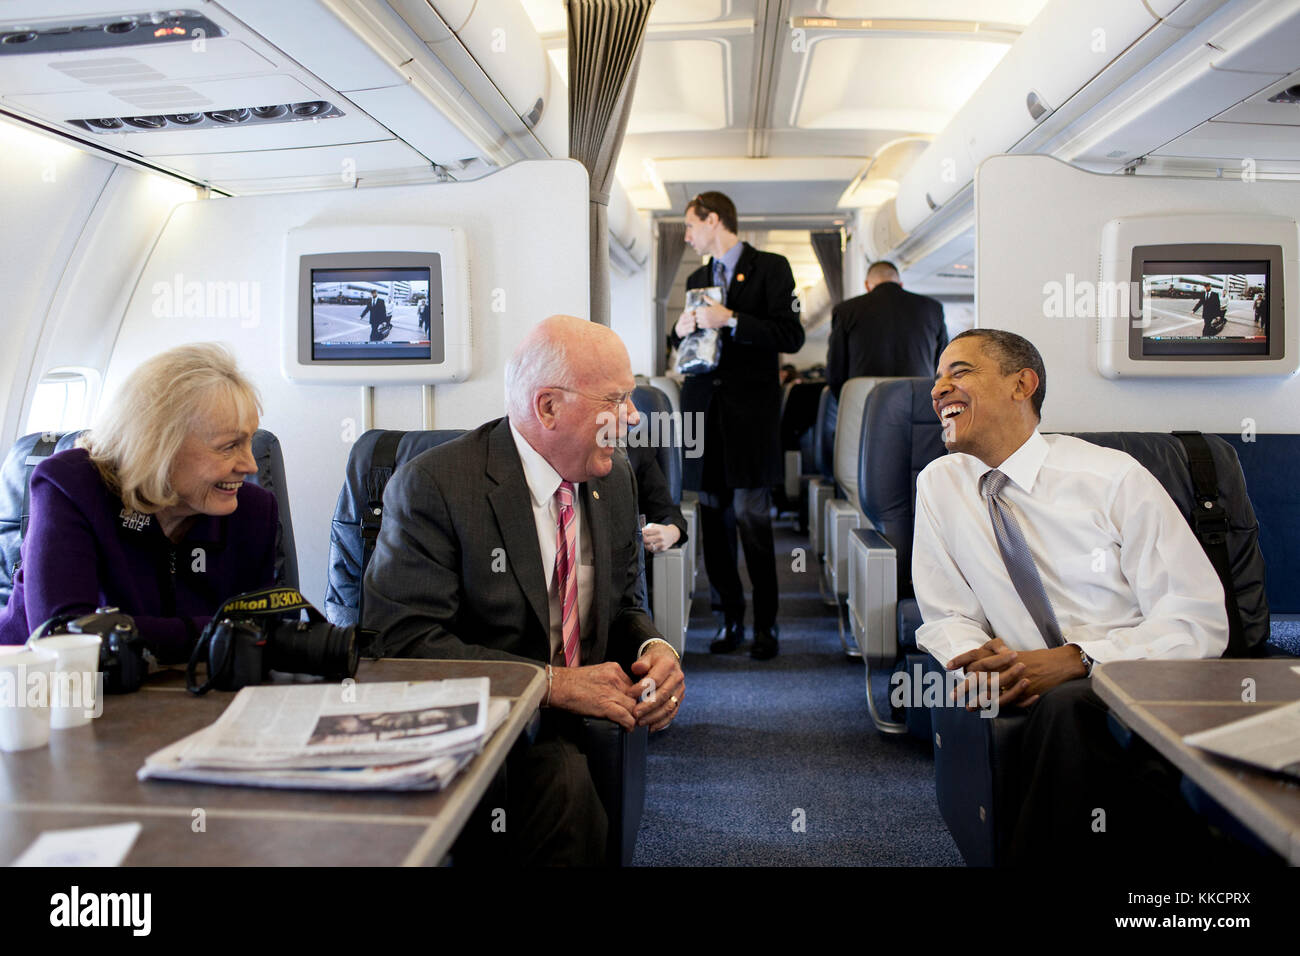 President Barack Obama talks with Sen. Patrick Leahy, D-VT, and Marcelle Leahy aboard Air Force One en route to Stock Photo